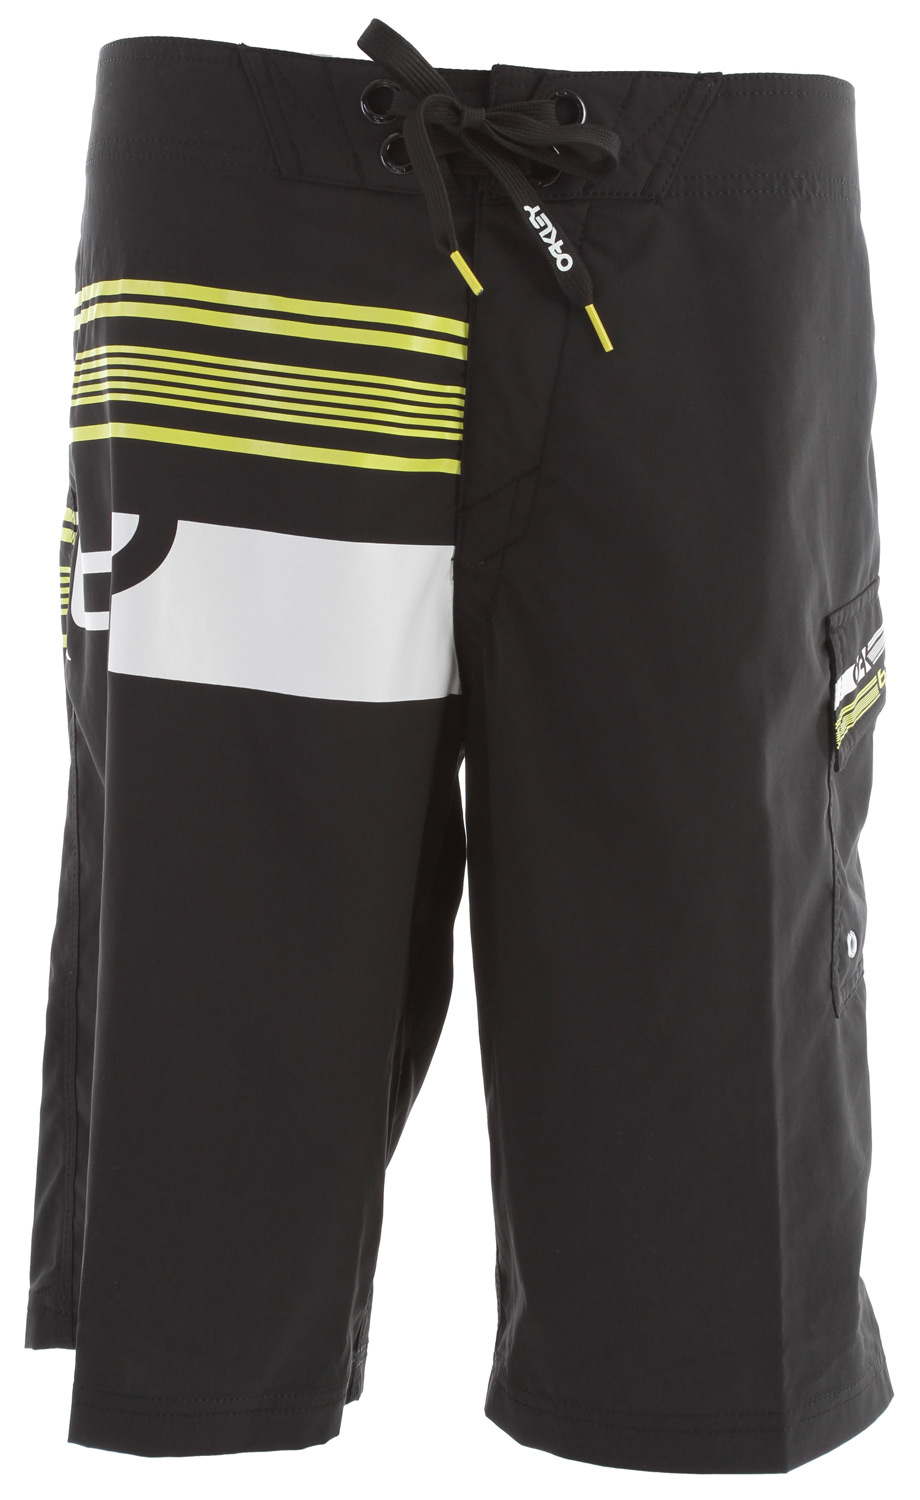 "Surf 2 way stretch boardshort with screenprint art/logos, new stretch fly, hook and loop side pocket and drawstring closure system.Key Features of the Oakley Joy Ride Boardshorts: 100% polyester 22"" Outseam - $50.00"